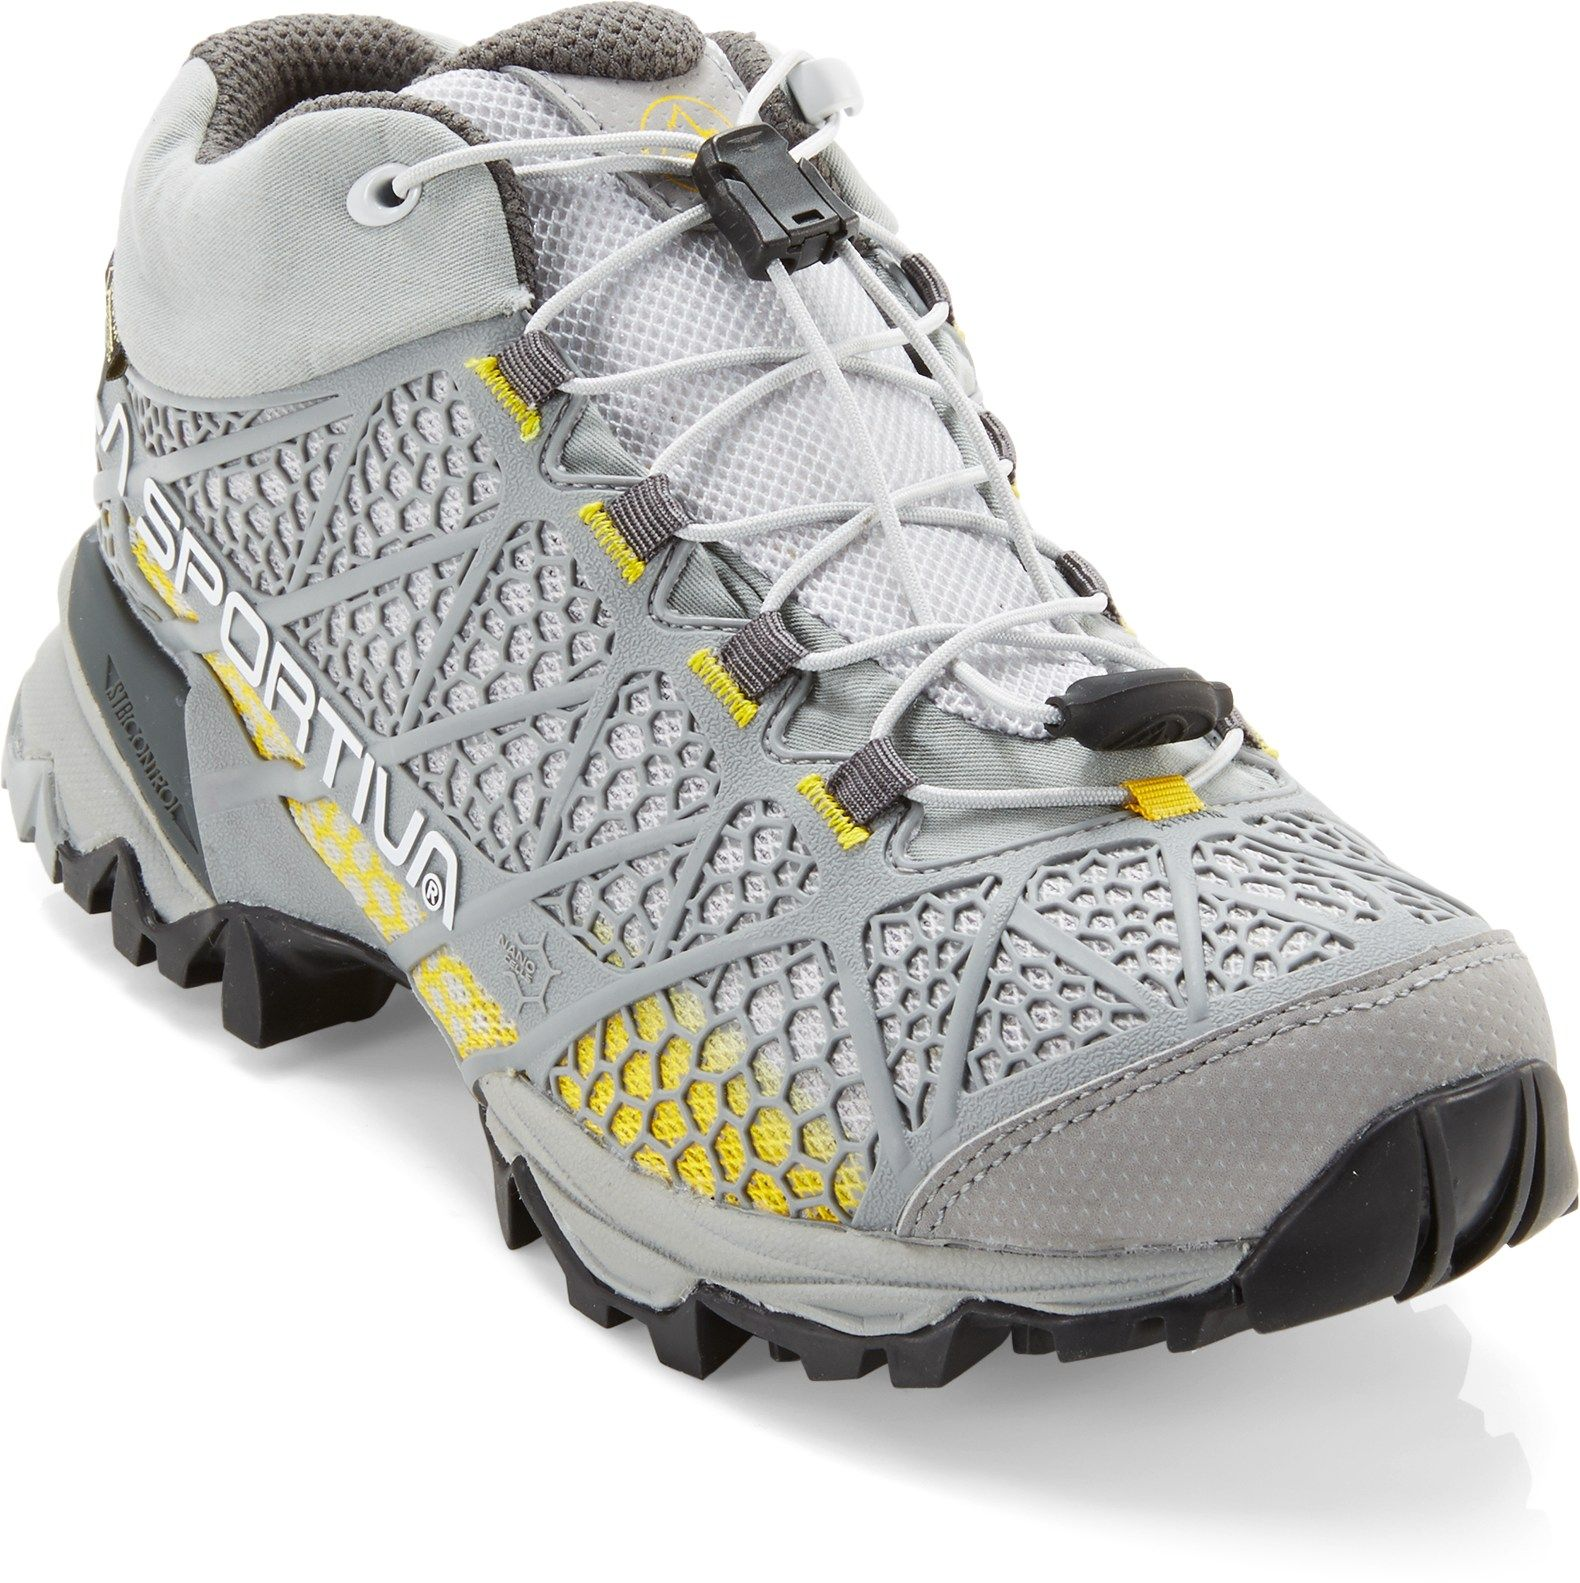 09c76b95237 Synthesis Mid GTX Hiking Shoes - Women's | Backpacking :: gear ...